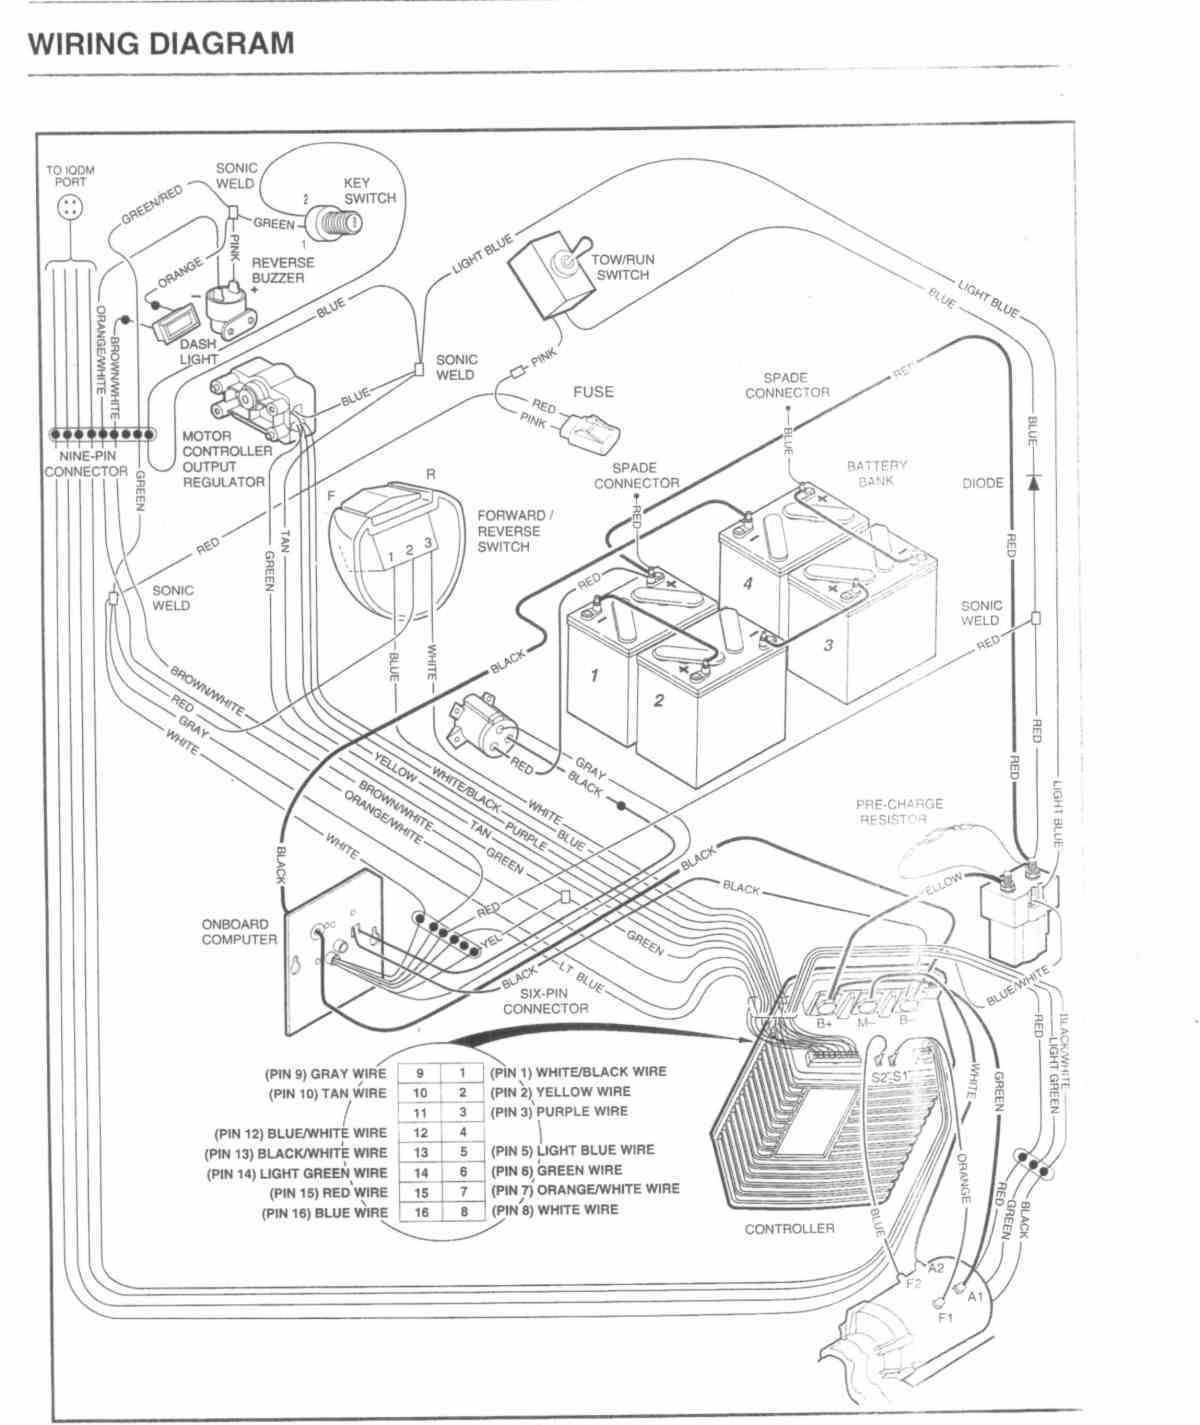 1999 club car wiring diagram key switch